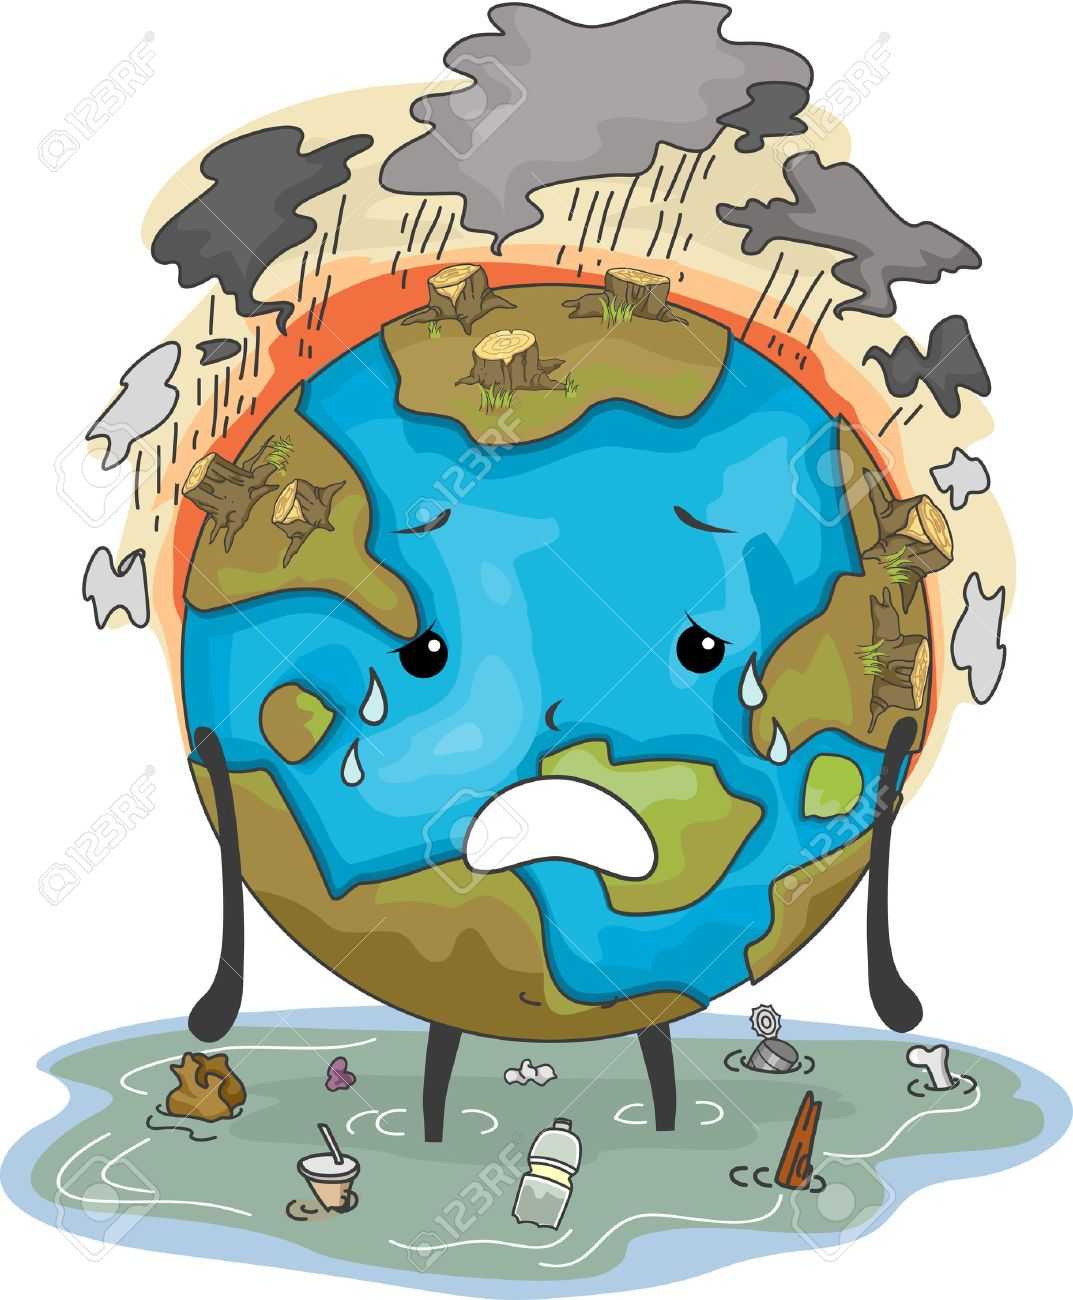 1073x1300 Mascot Illustration Featuring The Earth Suffering From Flooding